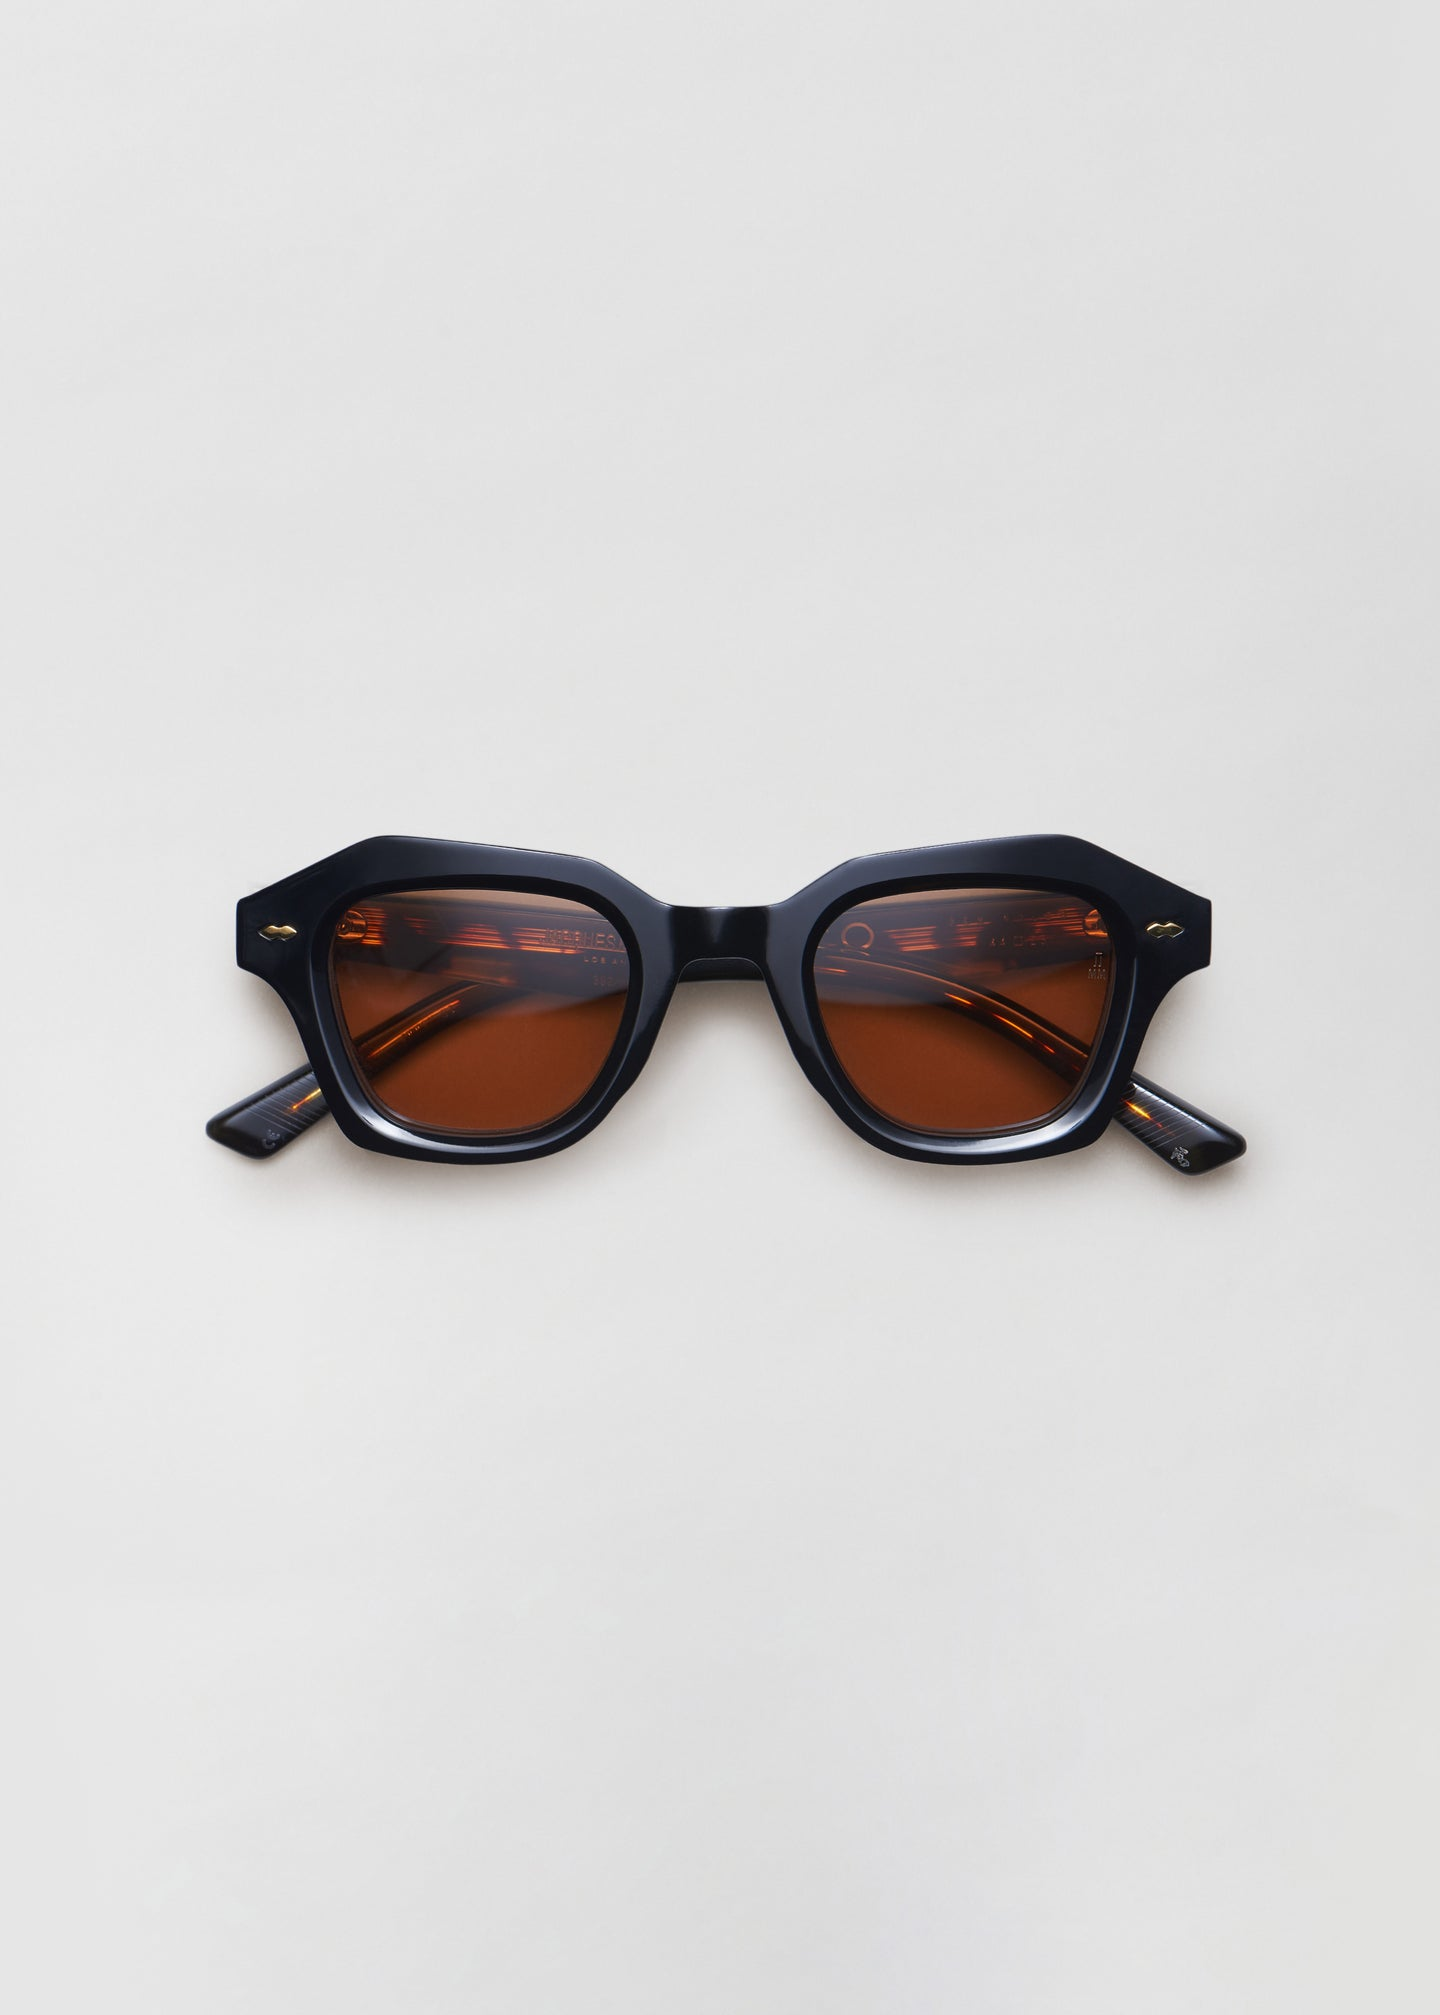 CO - Schindler Sunglasses in Noir